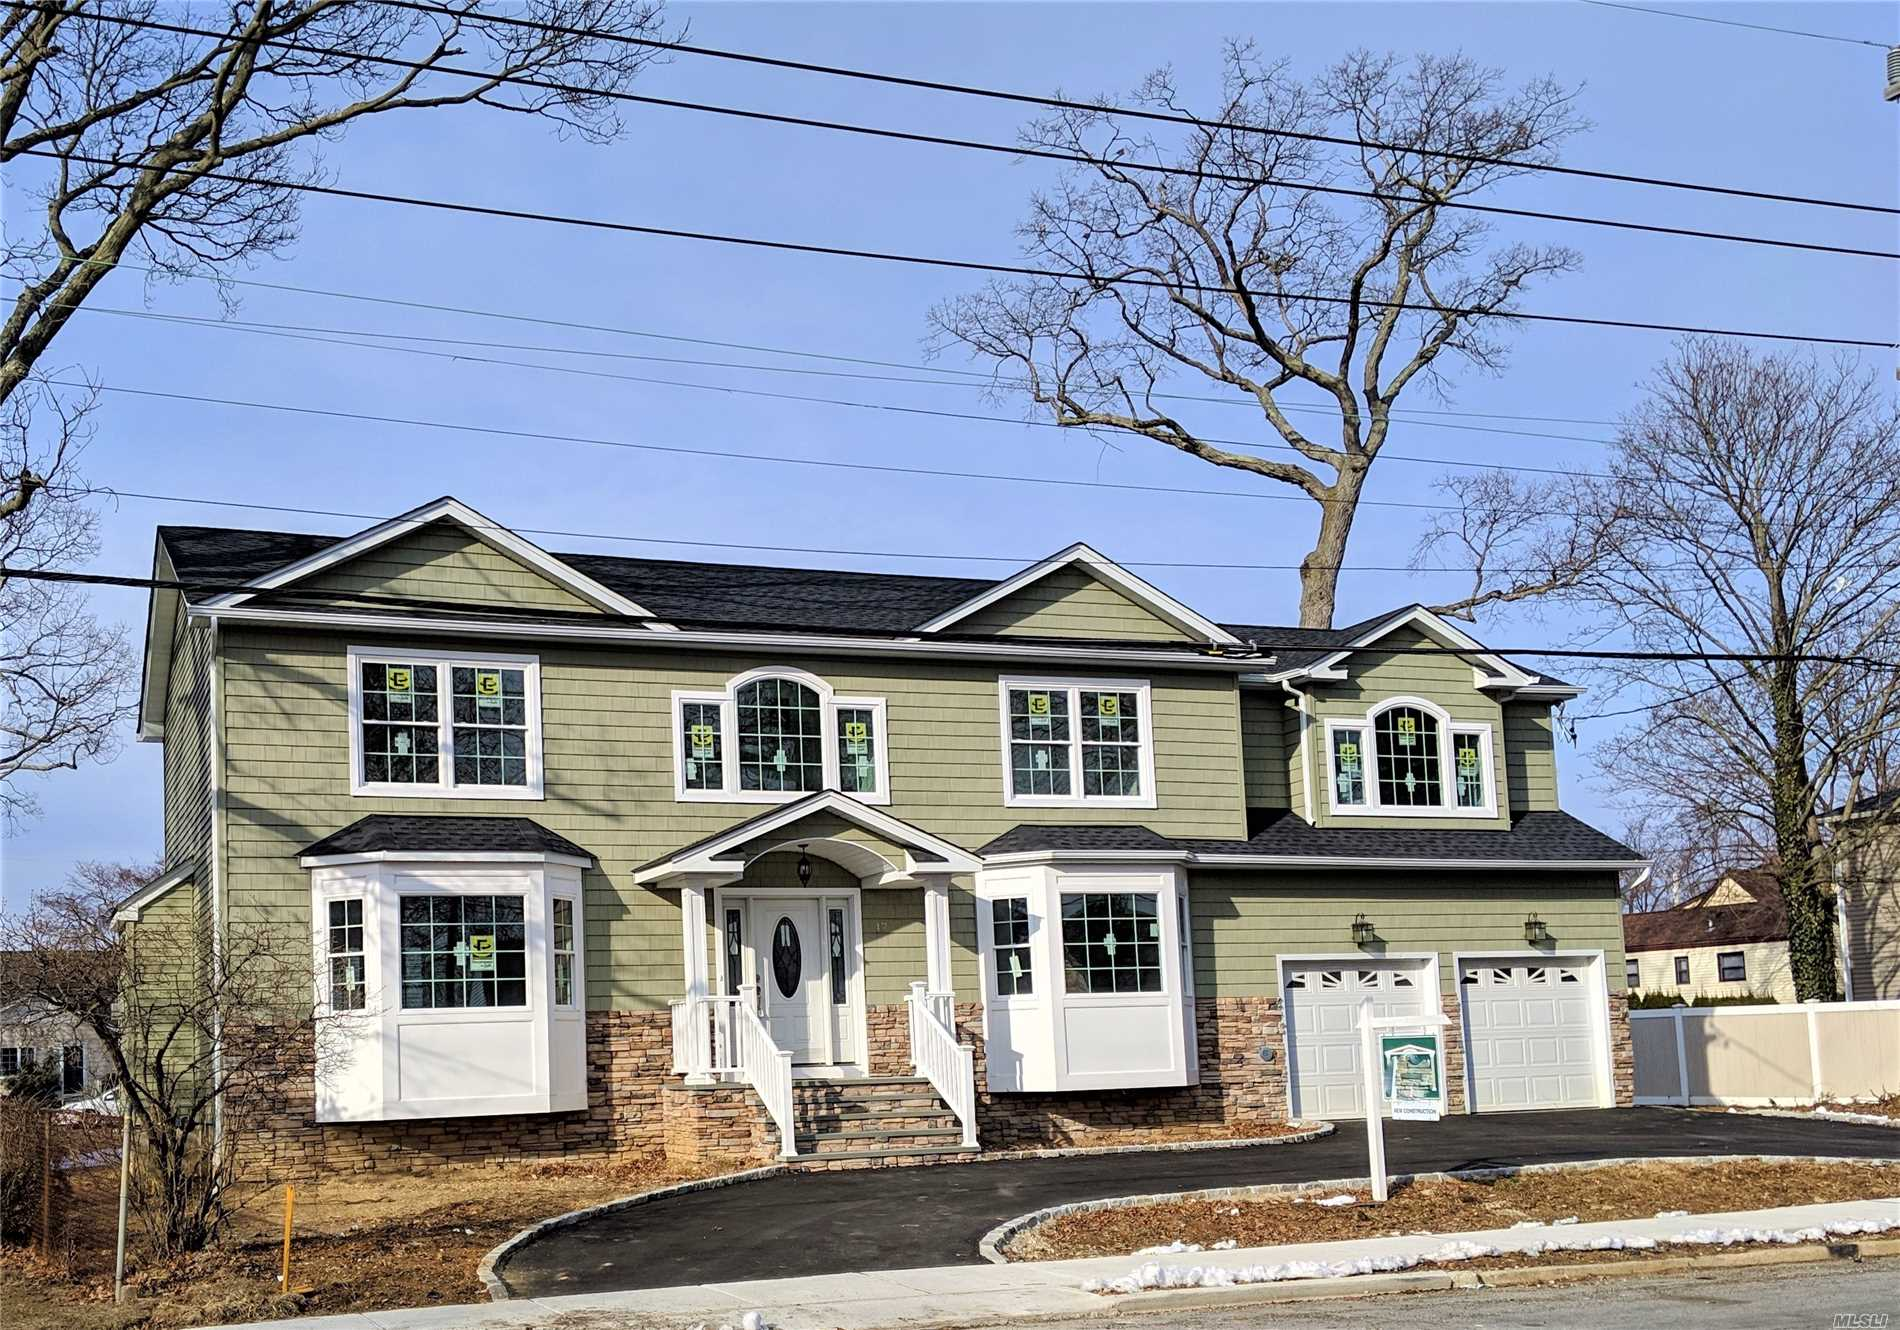 Massapequa Woods Energy Star New Construction In Mass Sd#23. Lg circular driveway w/2 car gar & dramatic circular staircase In 2 story foyer. Quality workmanship Incl oak stairs & banister in bsmt, built ins by fpl In great Rm & mud rm & Pella wndws. Conv To RR & major Roadways / mid block location. A dream of a master suite w/lrg WIC, Dbl closet & fbth. Laundry on 2nd floor. New dark stainless Samsung Appl inc French door fridge. Stainless farm sink. 2 zone gas heat & CAC. Very near completion.